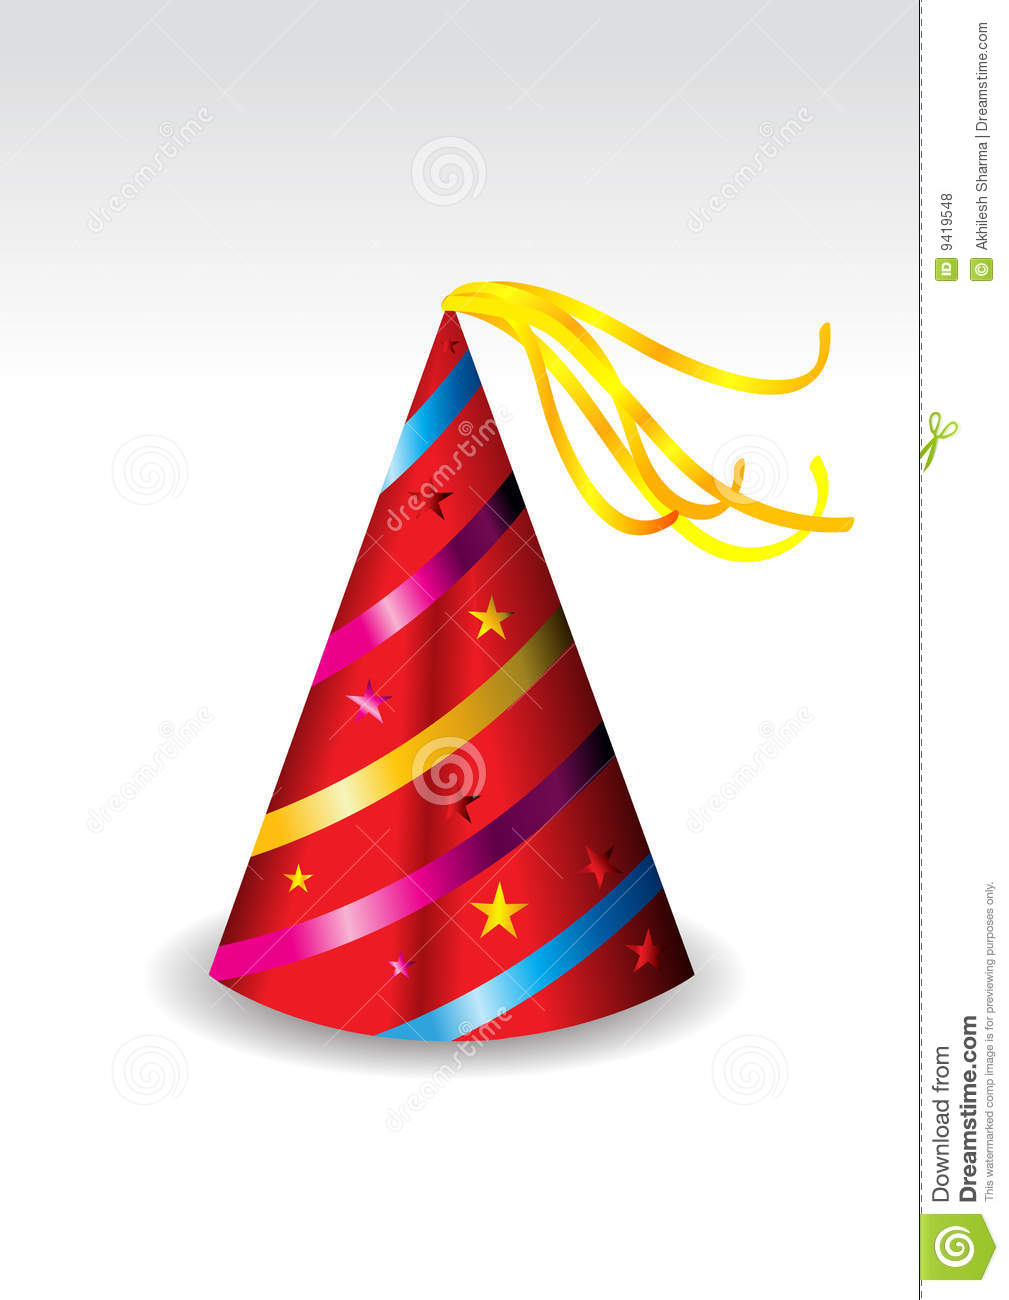 465a2a32 Illustration Of A Red Party Hat Stock Vector - Illustration of happy ...